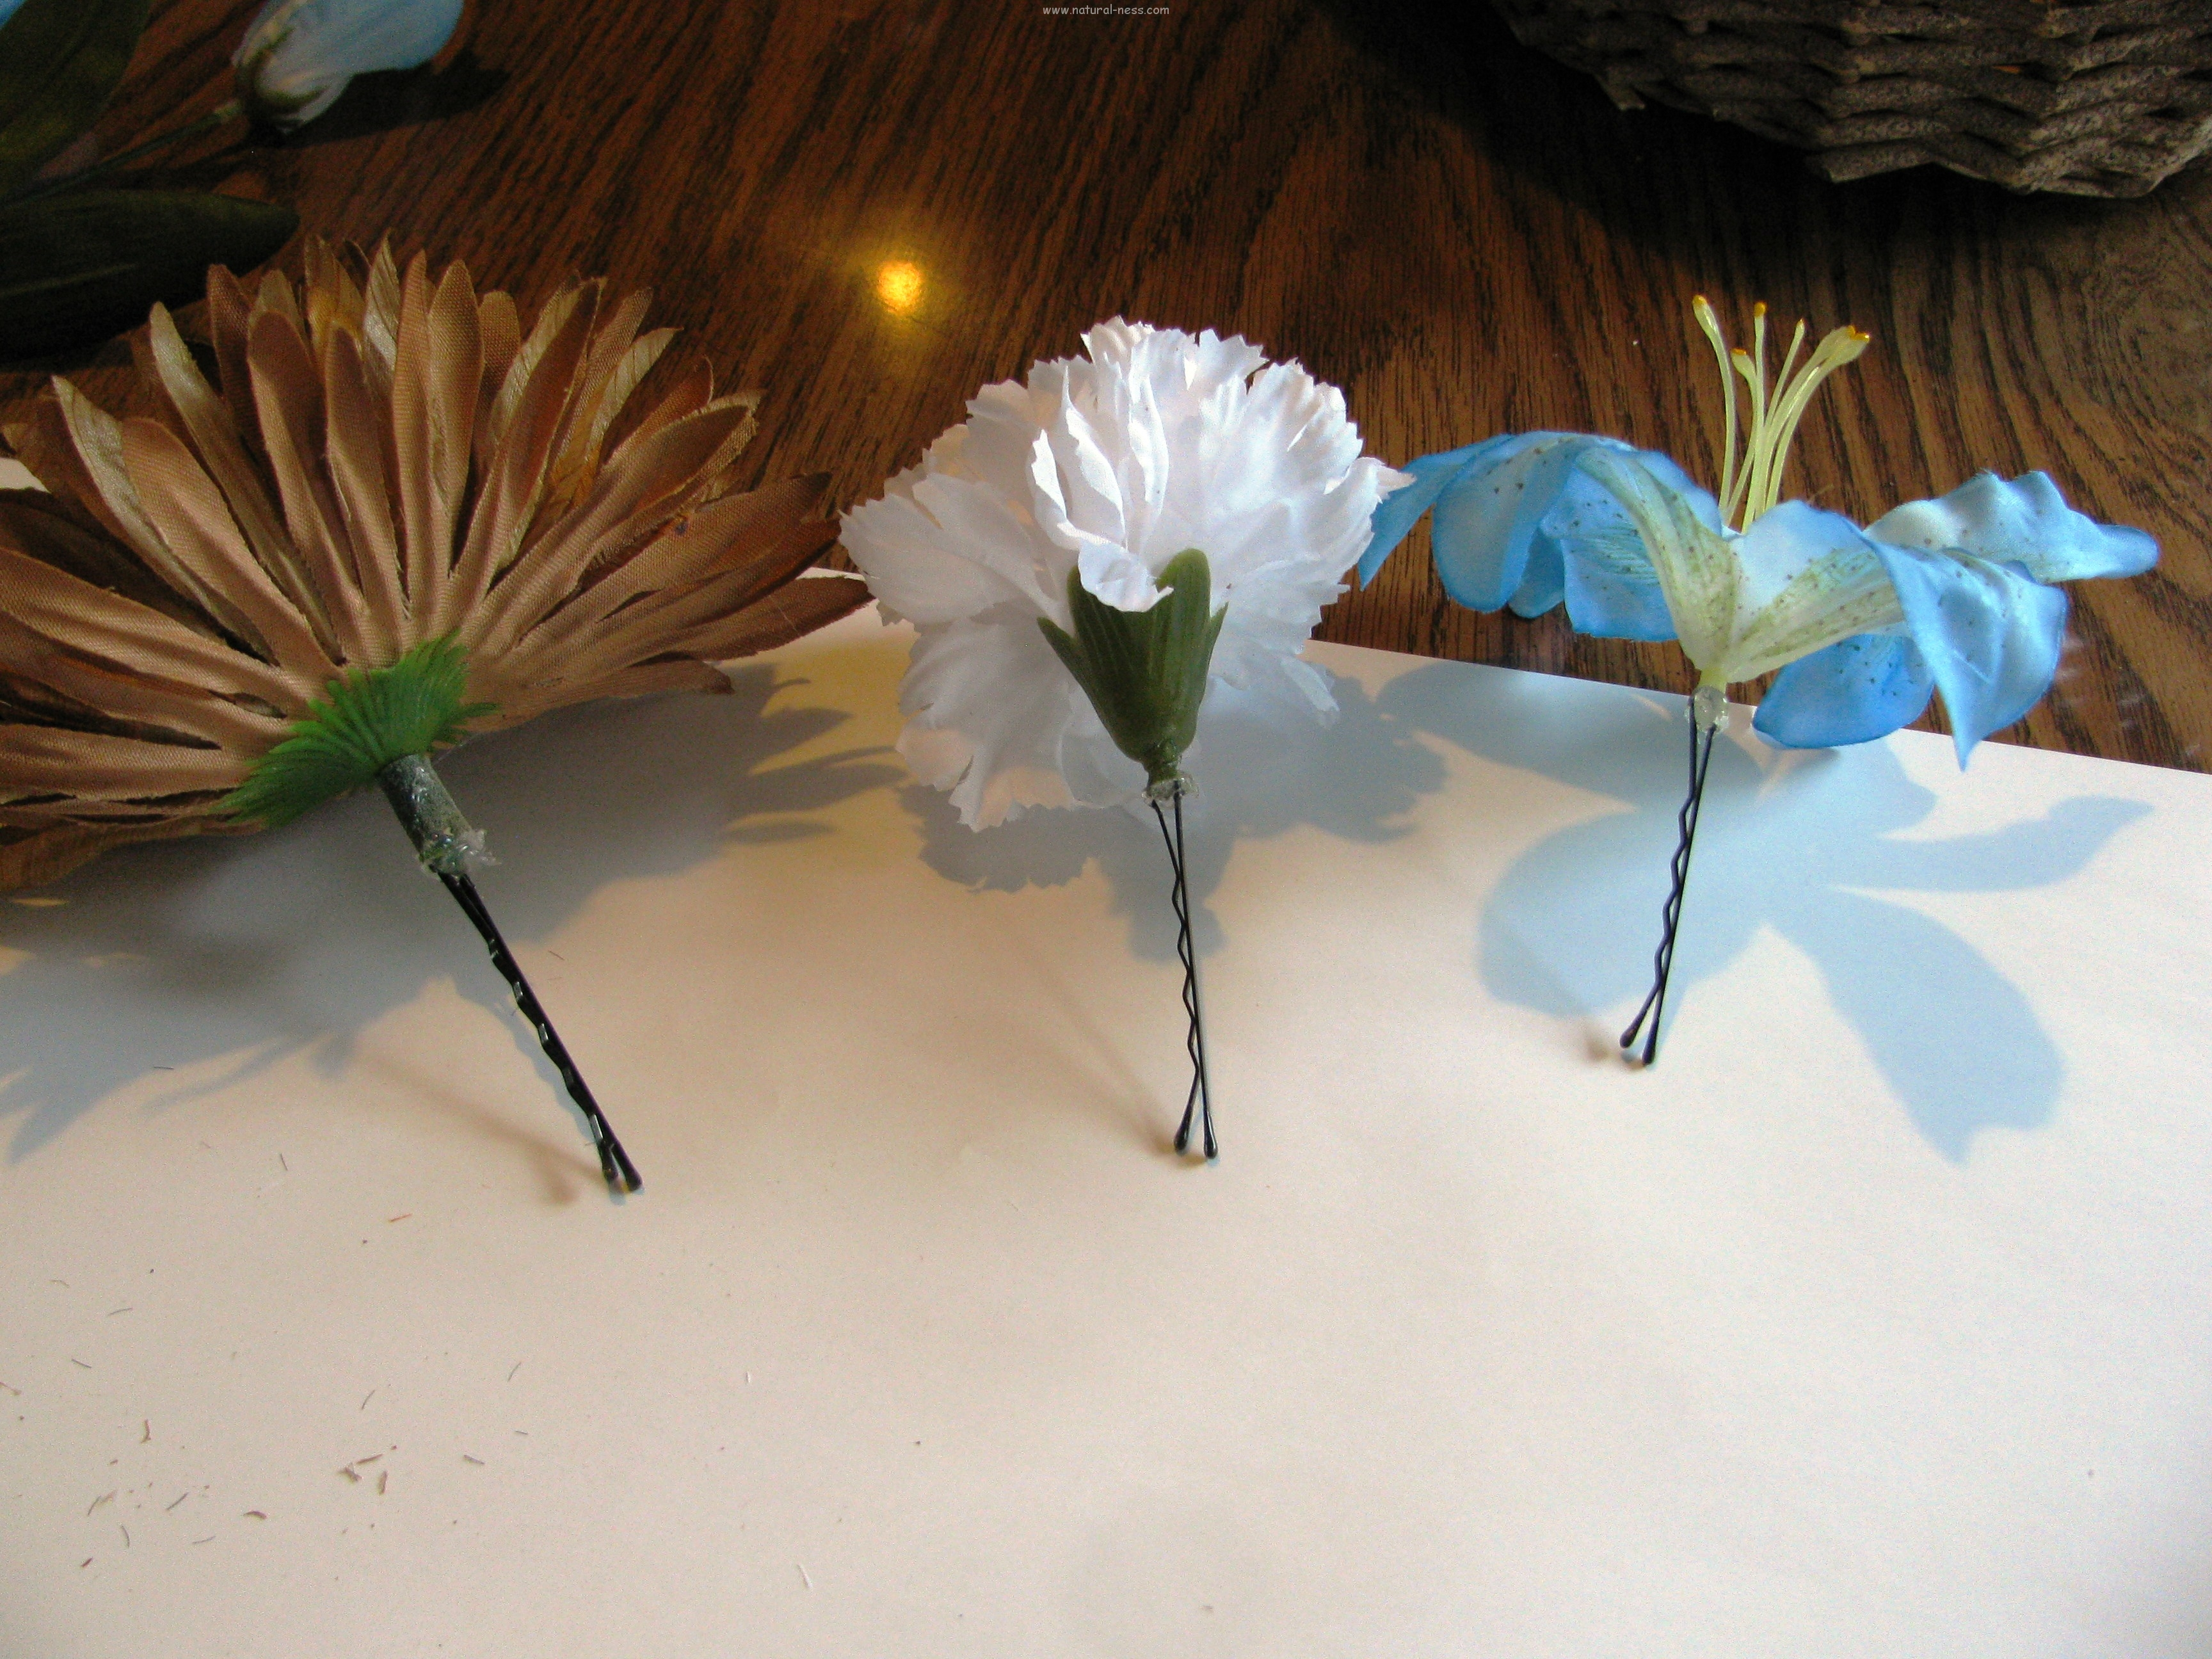 Here Is What The Flowers Look Like After Being Attached To Bobby Pins